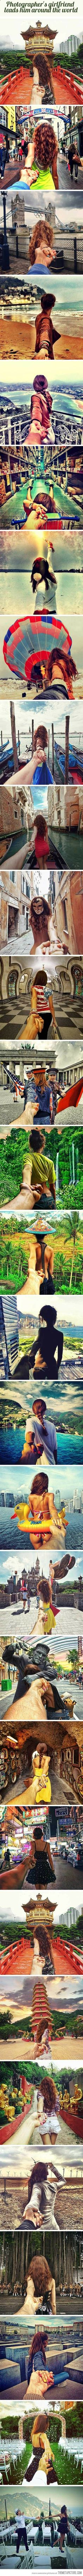 Photographers girlfriend leads him around the world... AWWWW